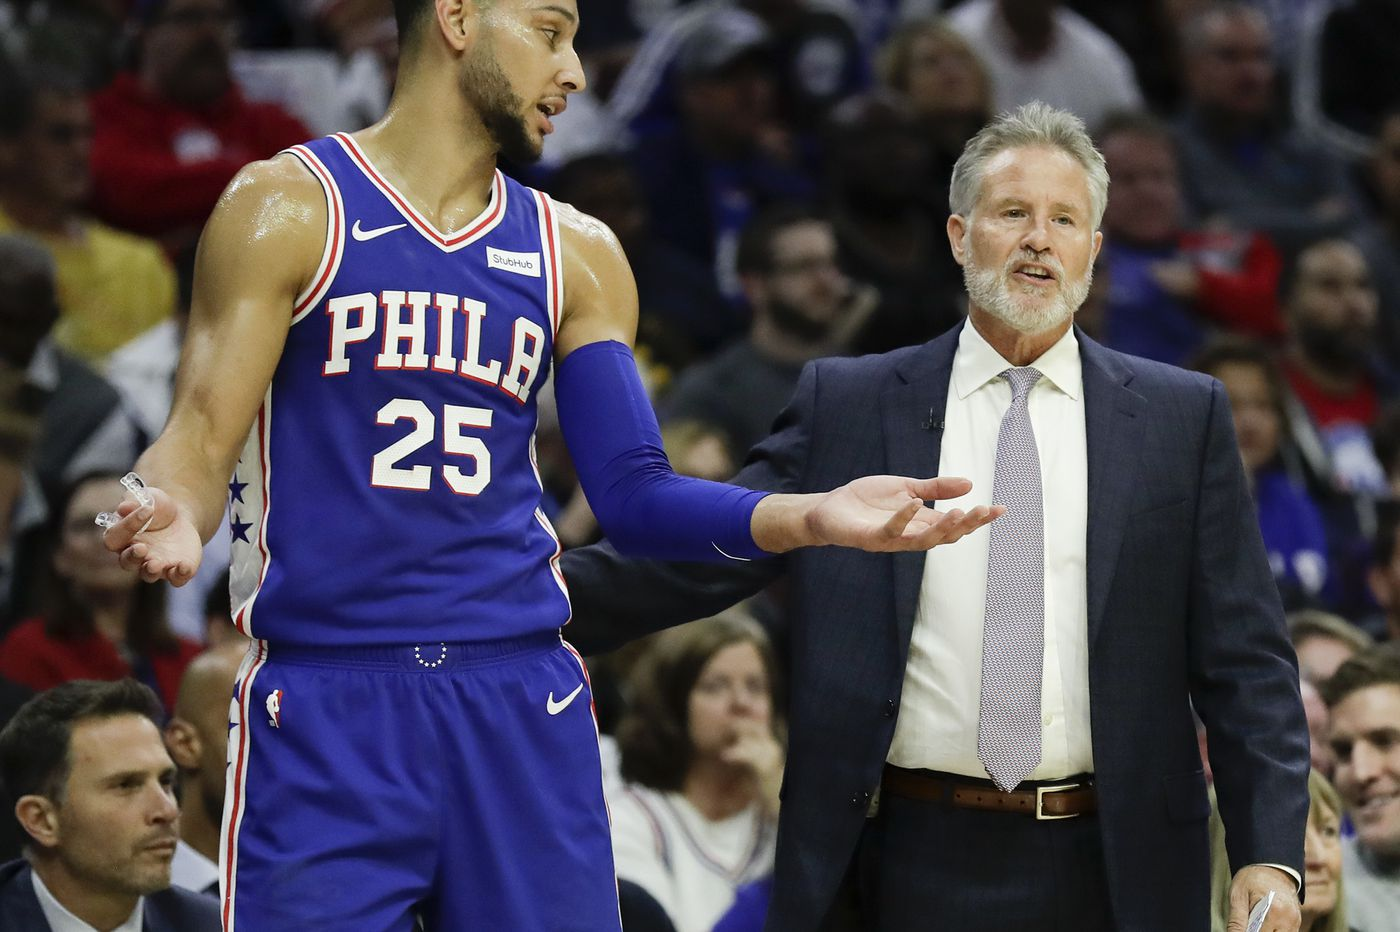 Sixers' Brett Brown on Ben Simmons: 'He's worthy of being an All-Star'